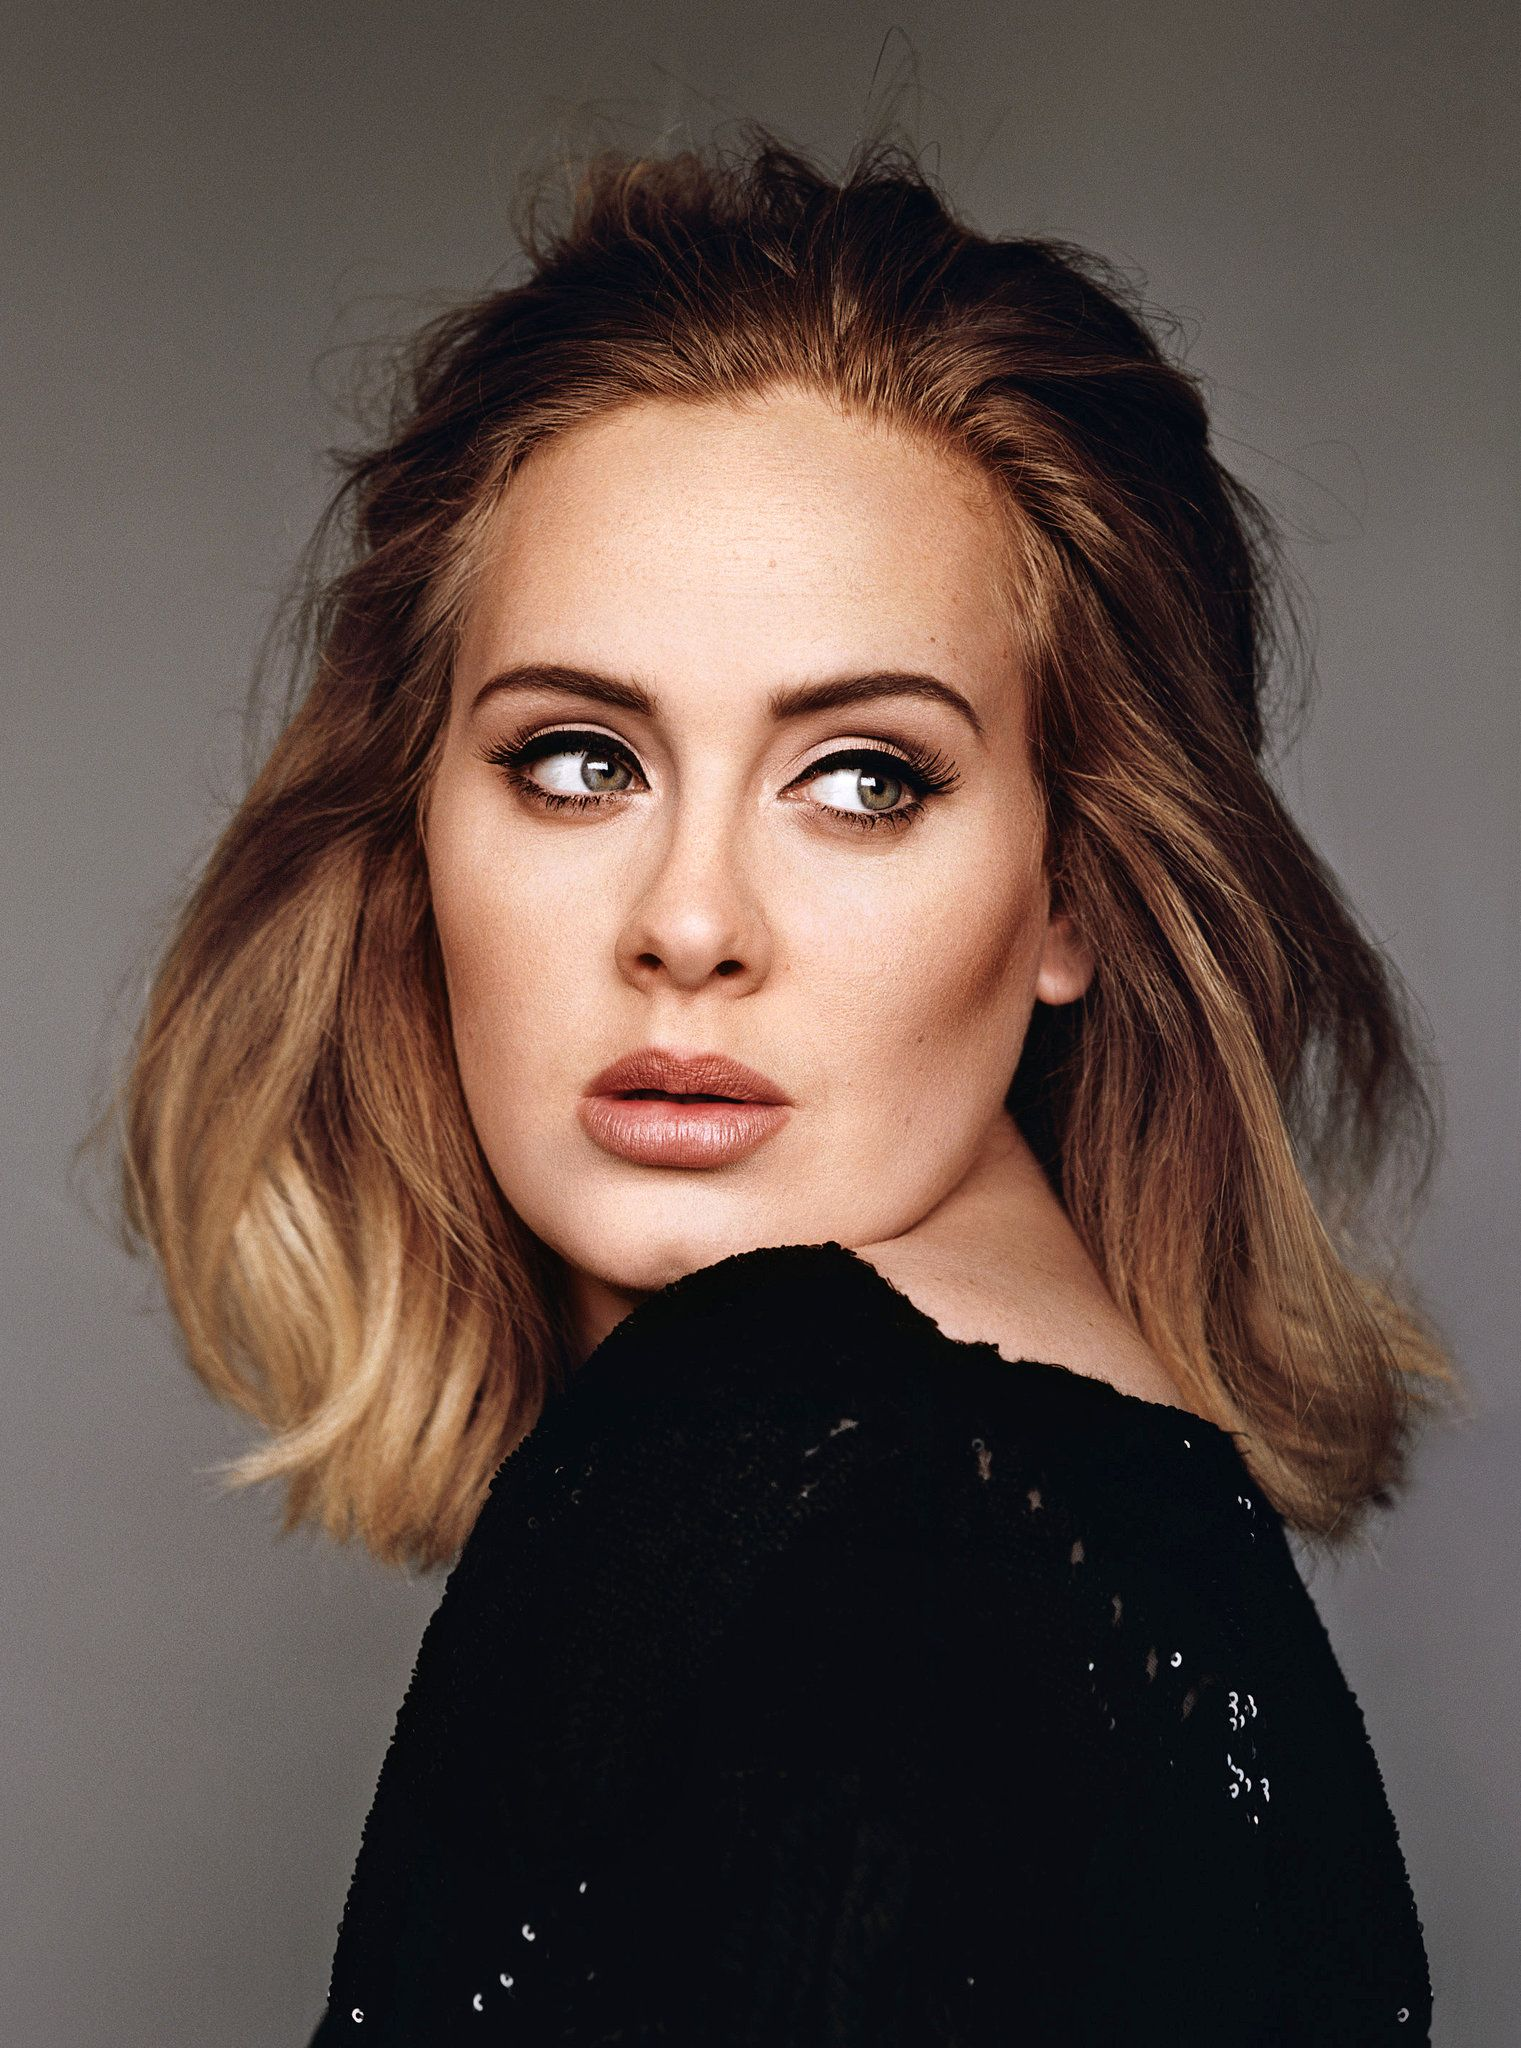 Haleyblevinsss Tolle Frauen In 2019 Adele Frisuren Schone